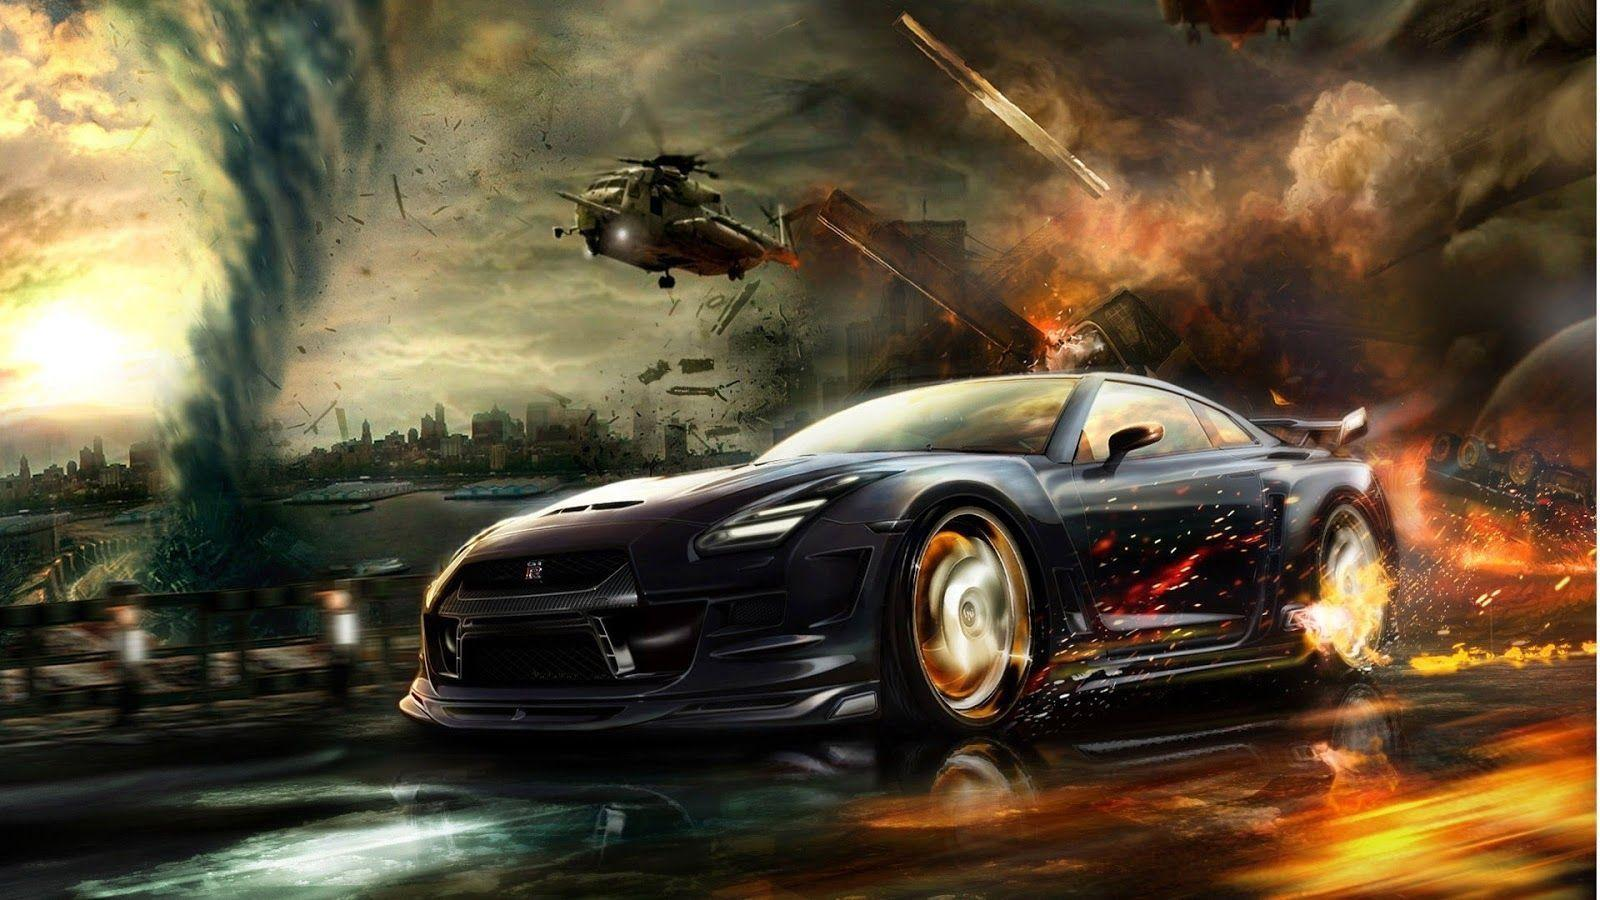 Cool Cars Wallpapers Top Free Cool Cars Backgrounds Wallpaperaccess